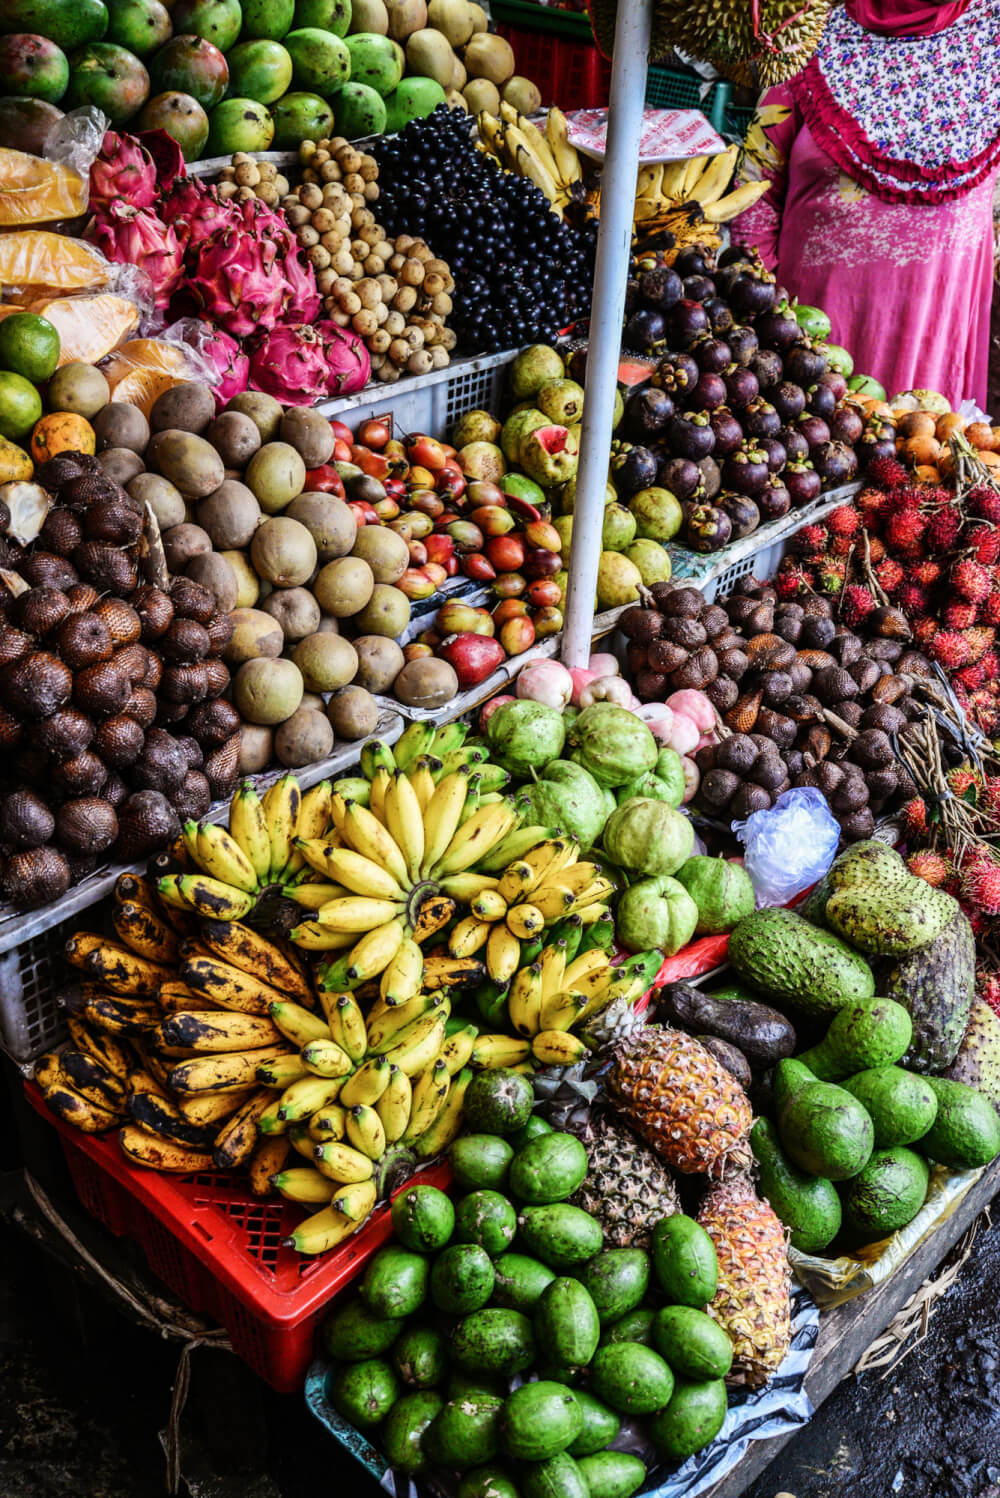 Local fruits and vegetables at a stall in Bali, Indonesia